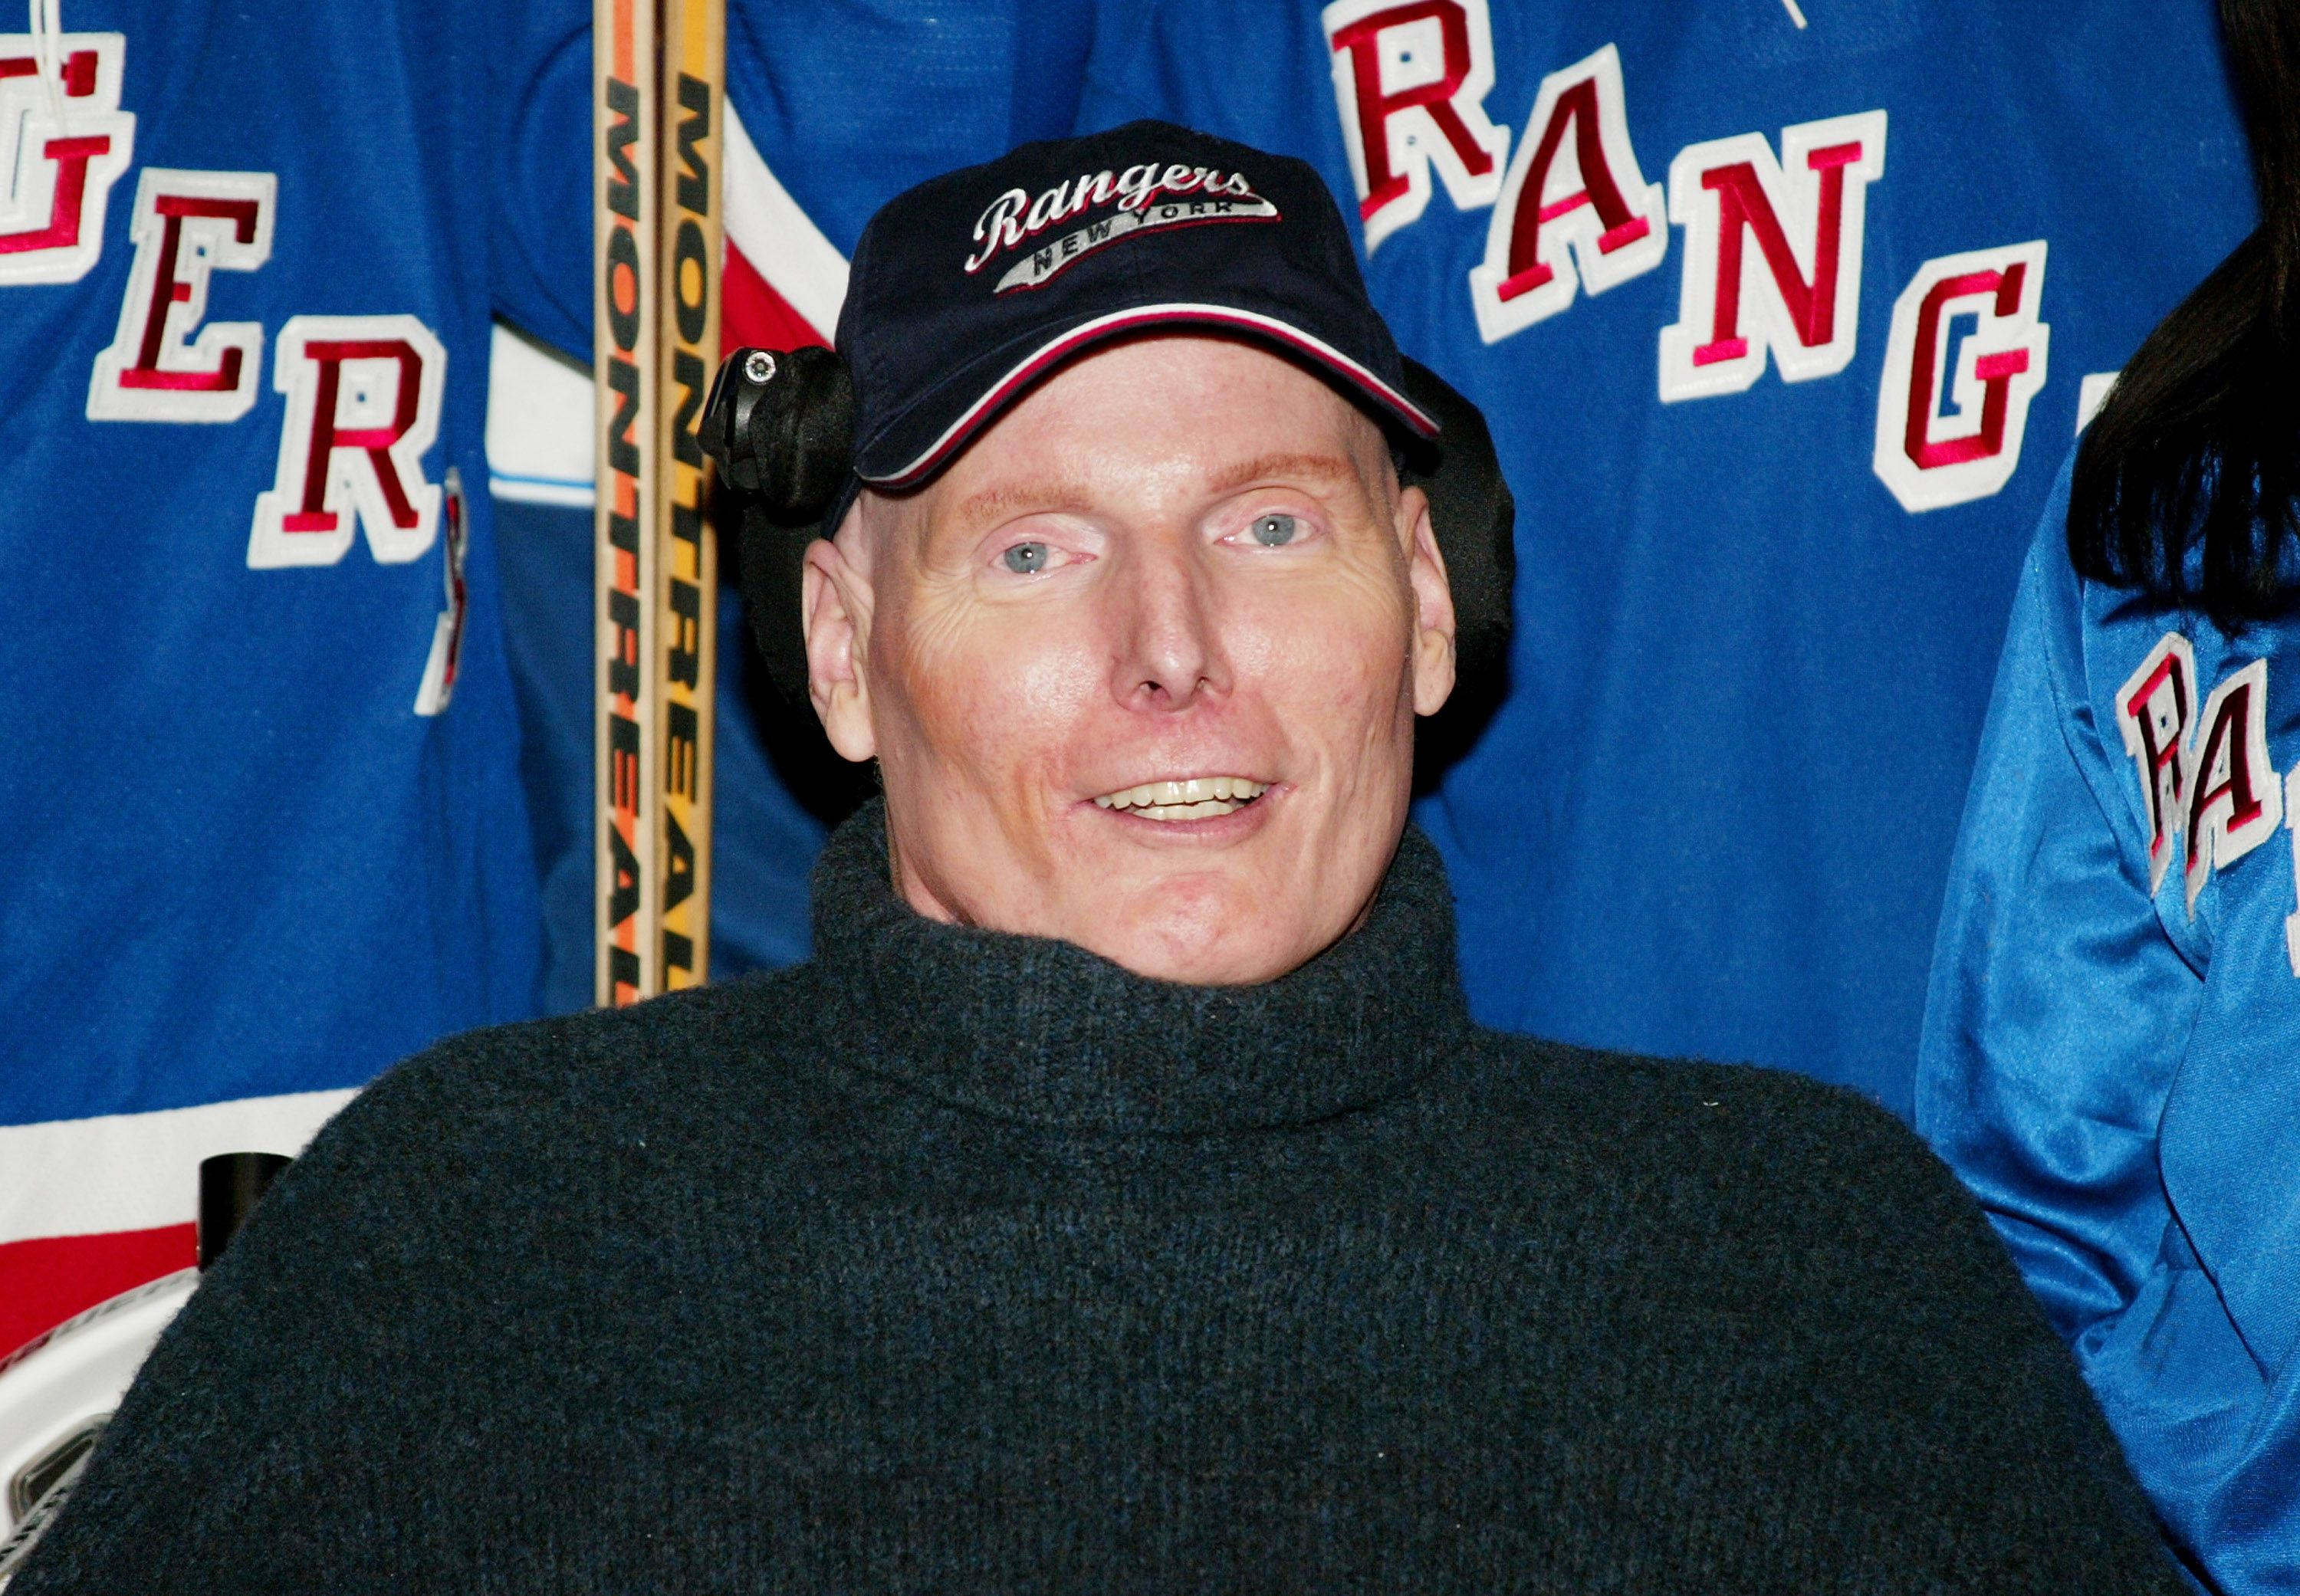 Christopher Reeve at the SuperSkate VI charity hockey event at Madison Square Garden on January 25, 2004, in New York City | Photo: Evan Agostini/Getty Images